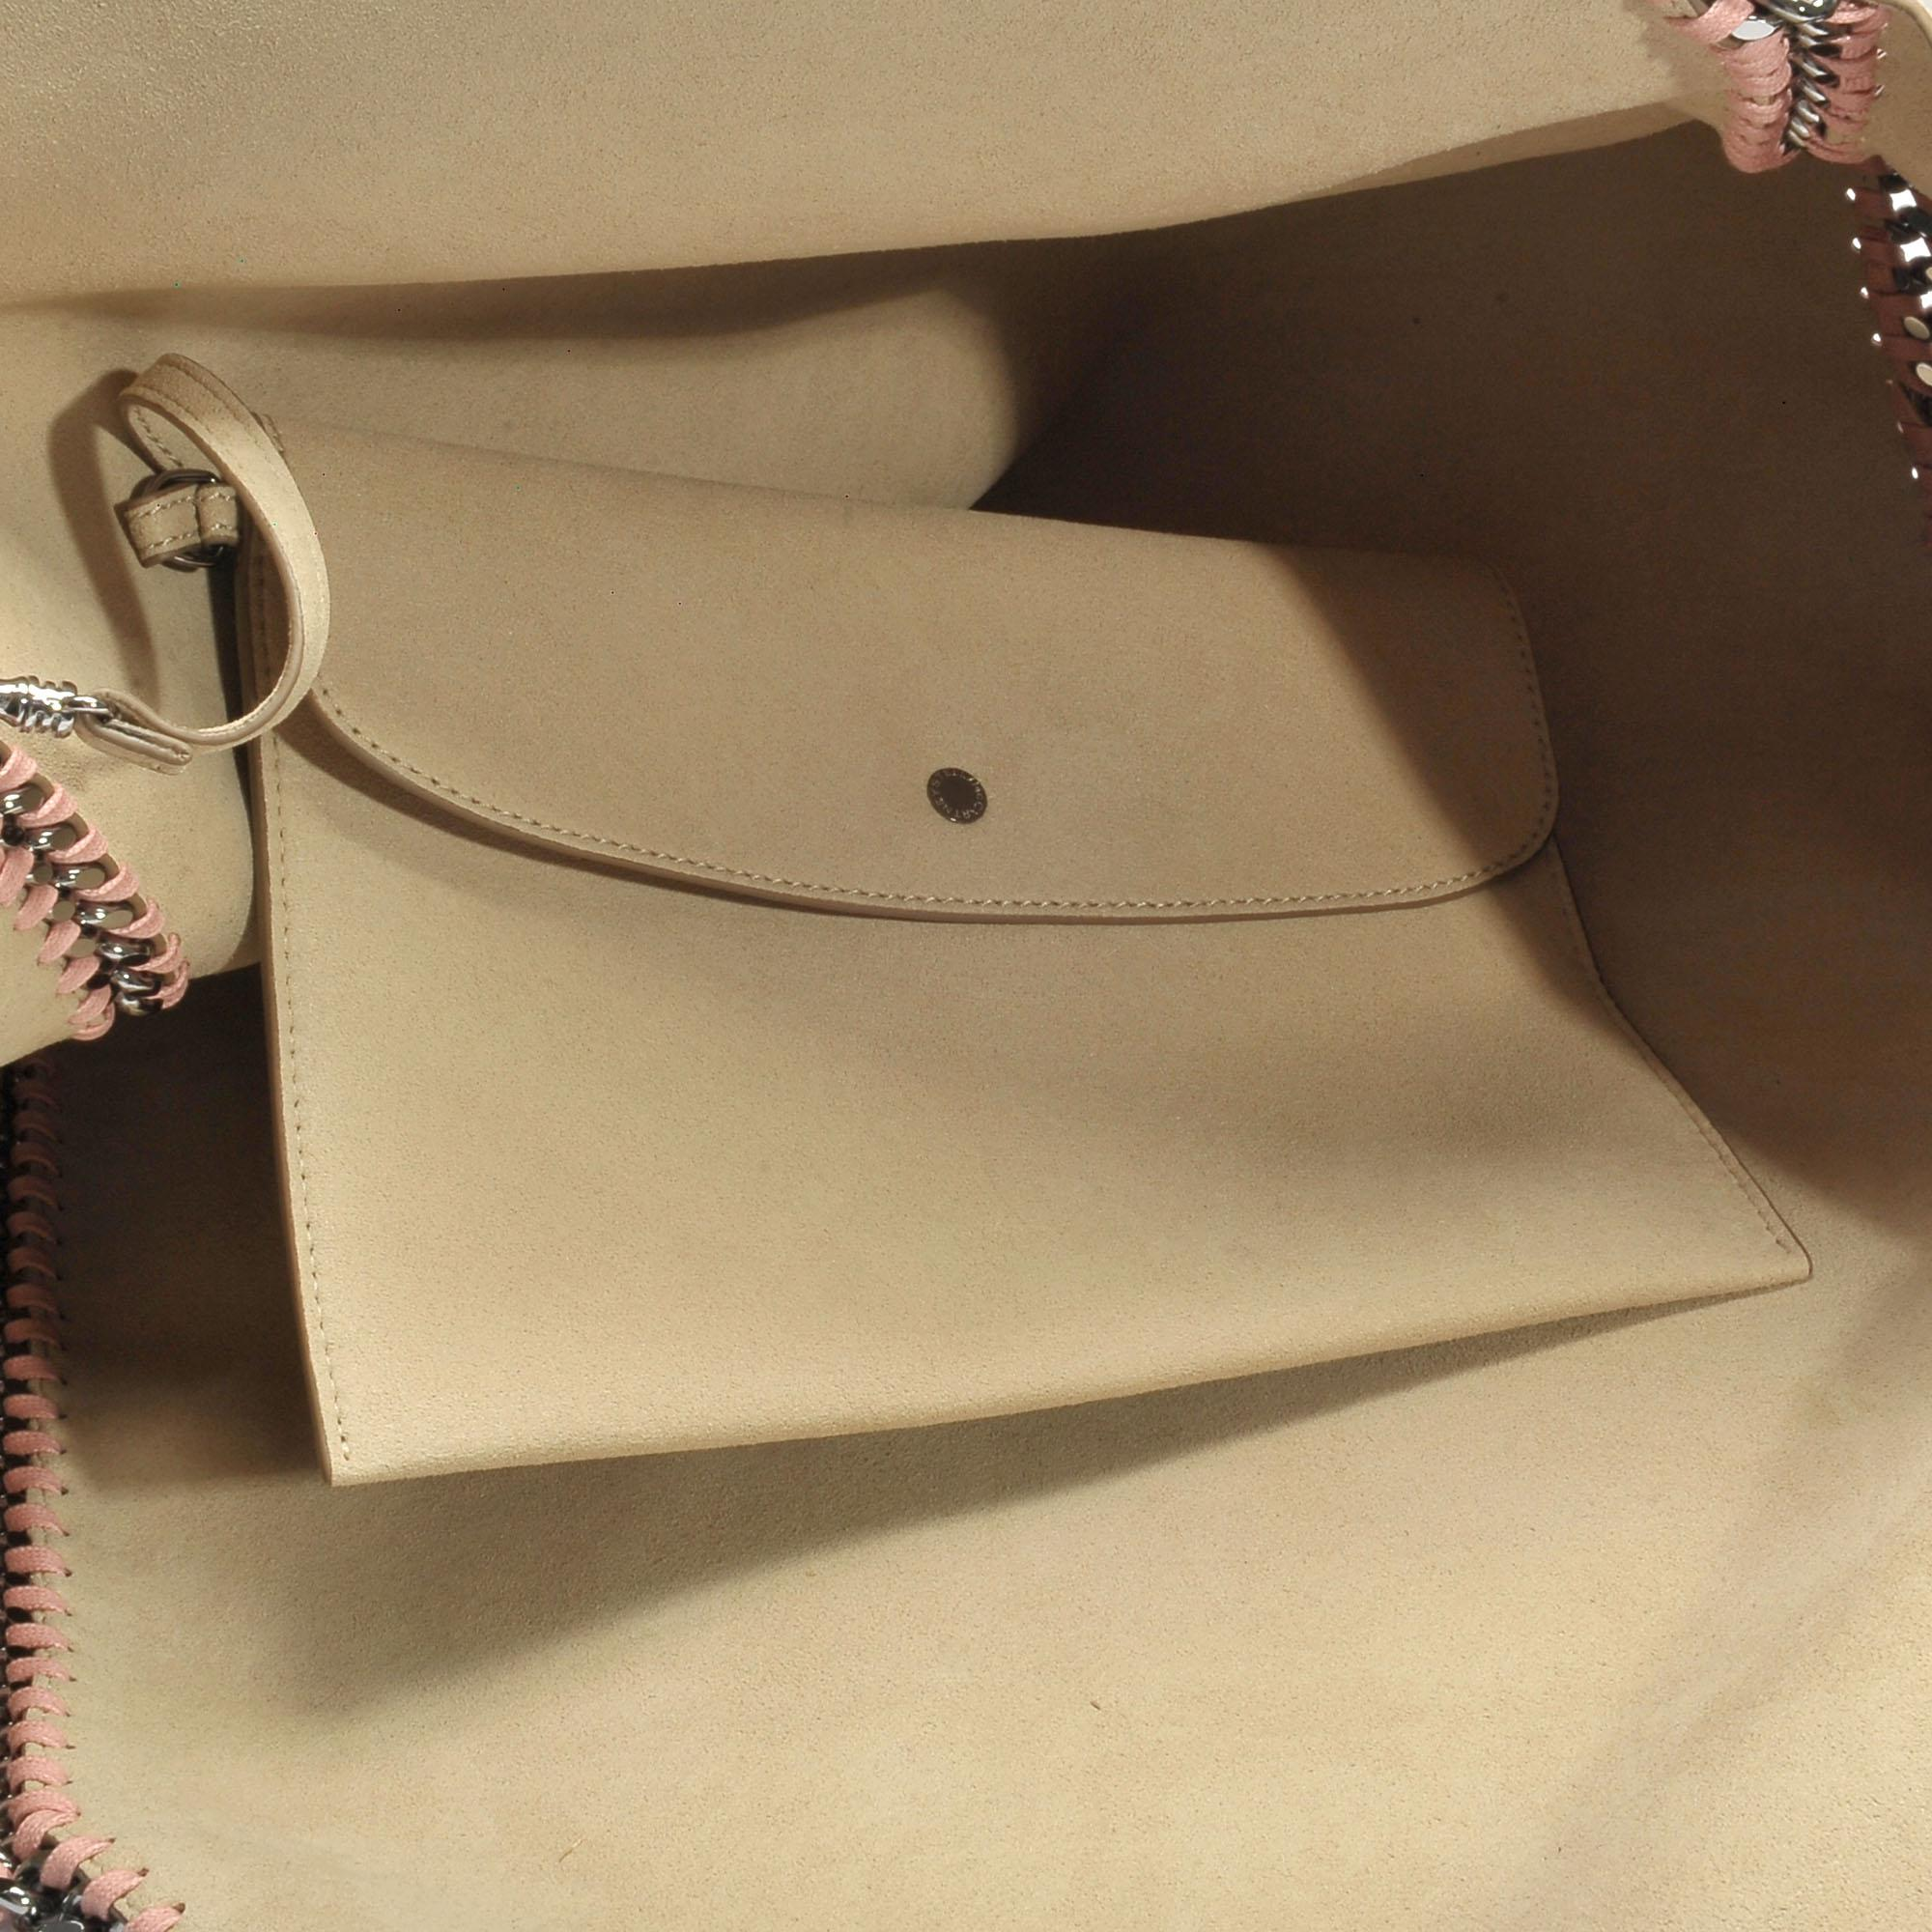 Stella McCartney Leather Reversible Falabella Small Tote Bag In Blush Synthetic Material in Pink